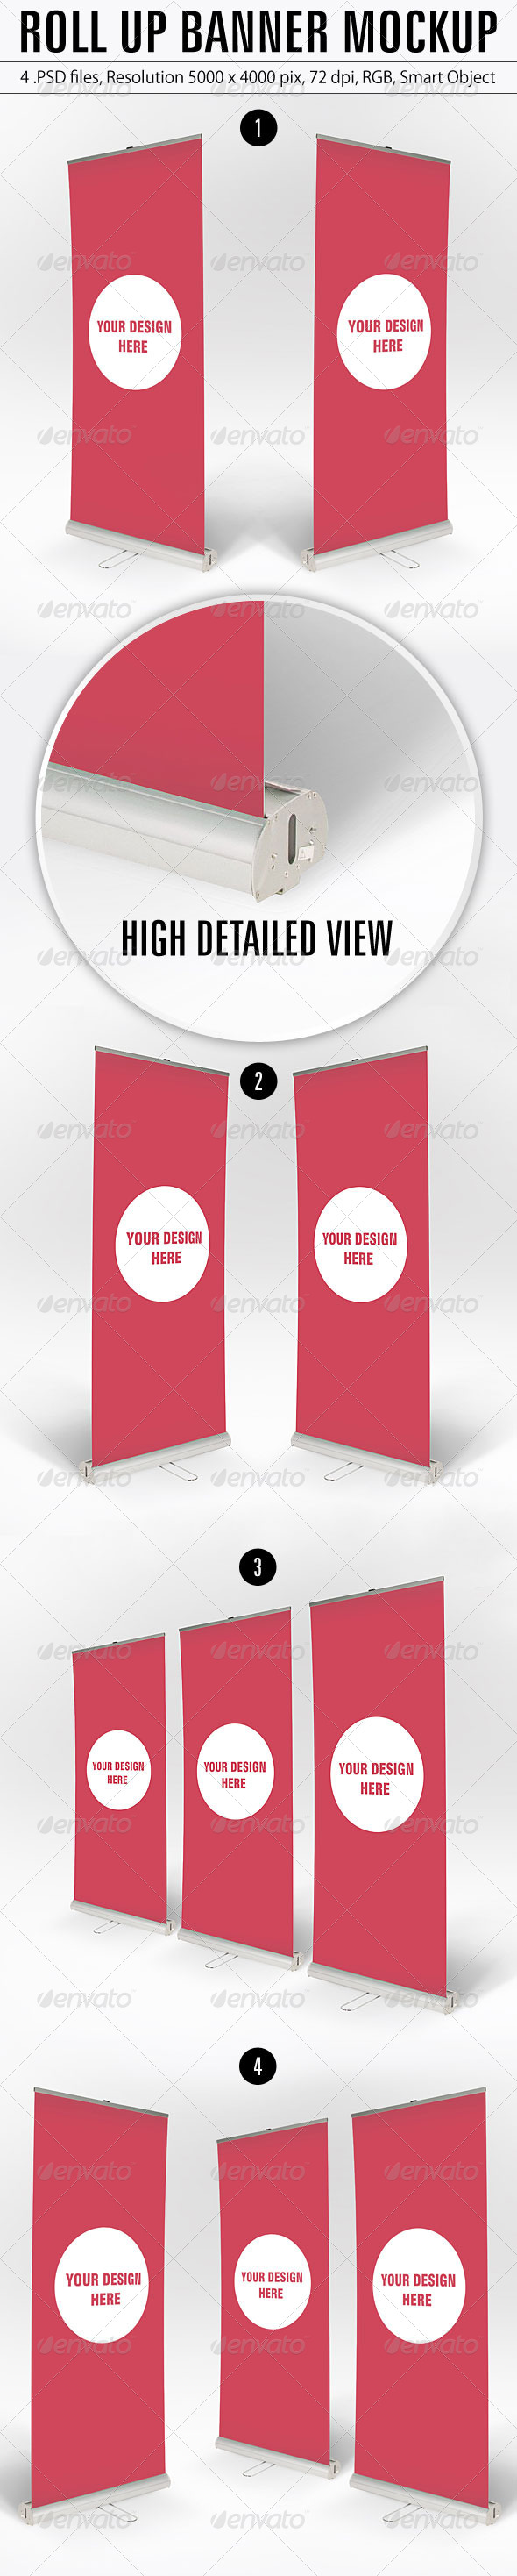 Roll Up Banner Mockup - Product Mock-Ups Graphics